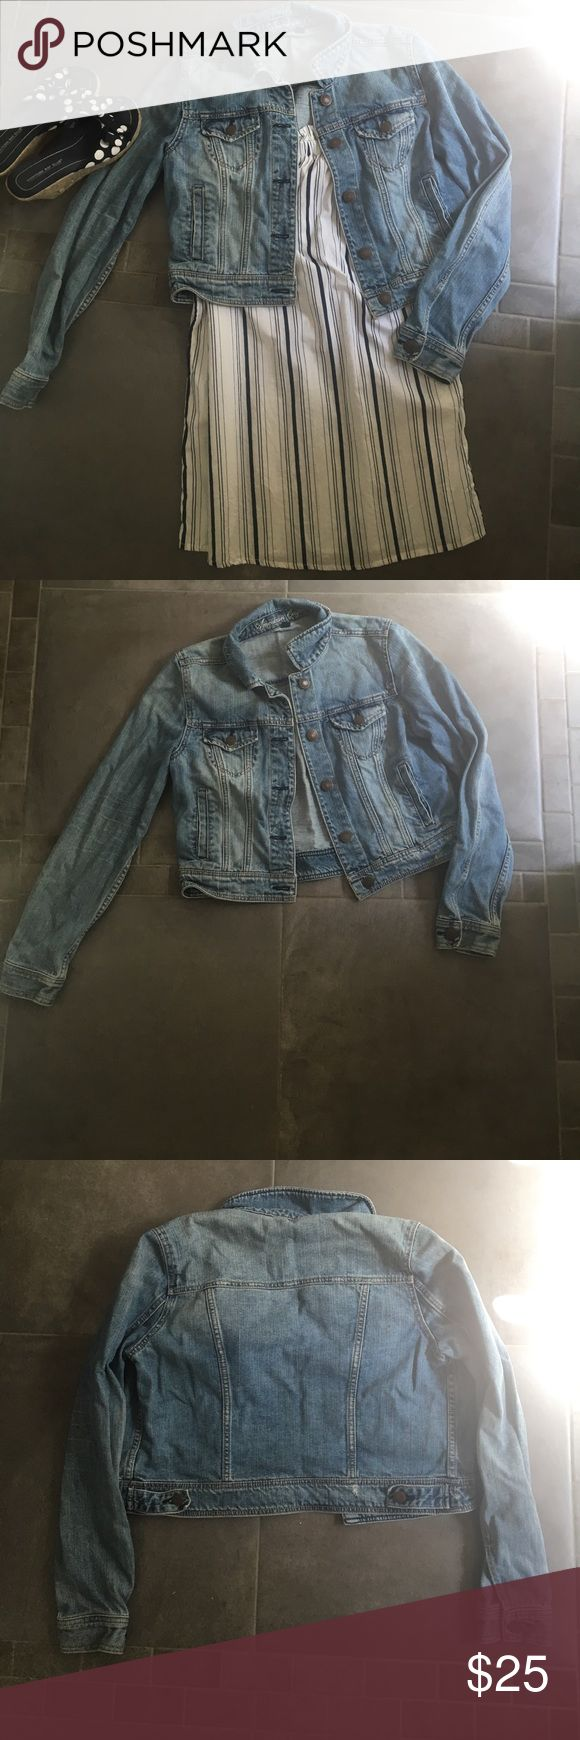 American Eagle Jean Jacket Great condition! Distressed detailing on bottom back is decorative (not from wear and tear) American Eagle Outfitters Jackets & Coats Jean Jackets